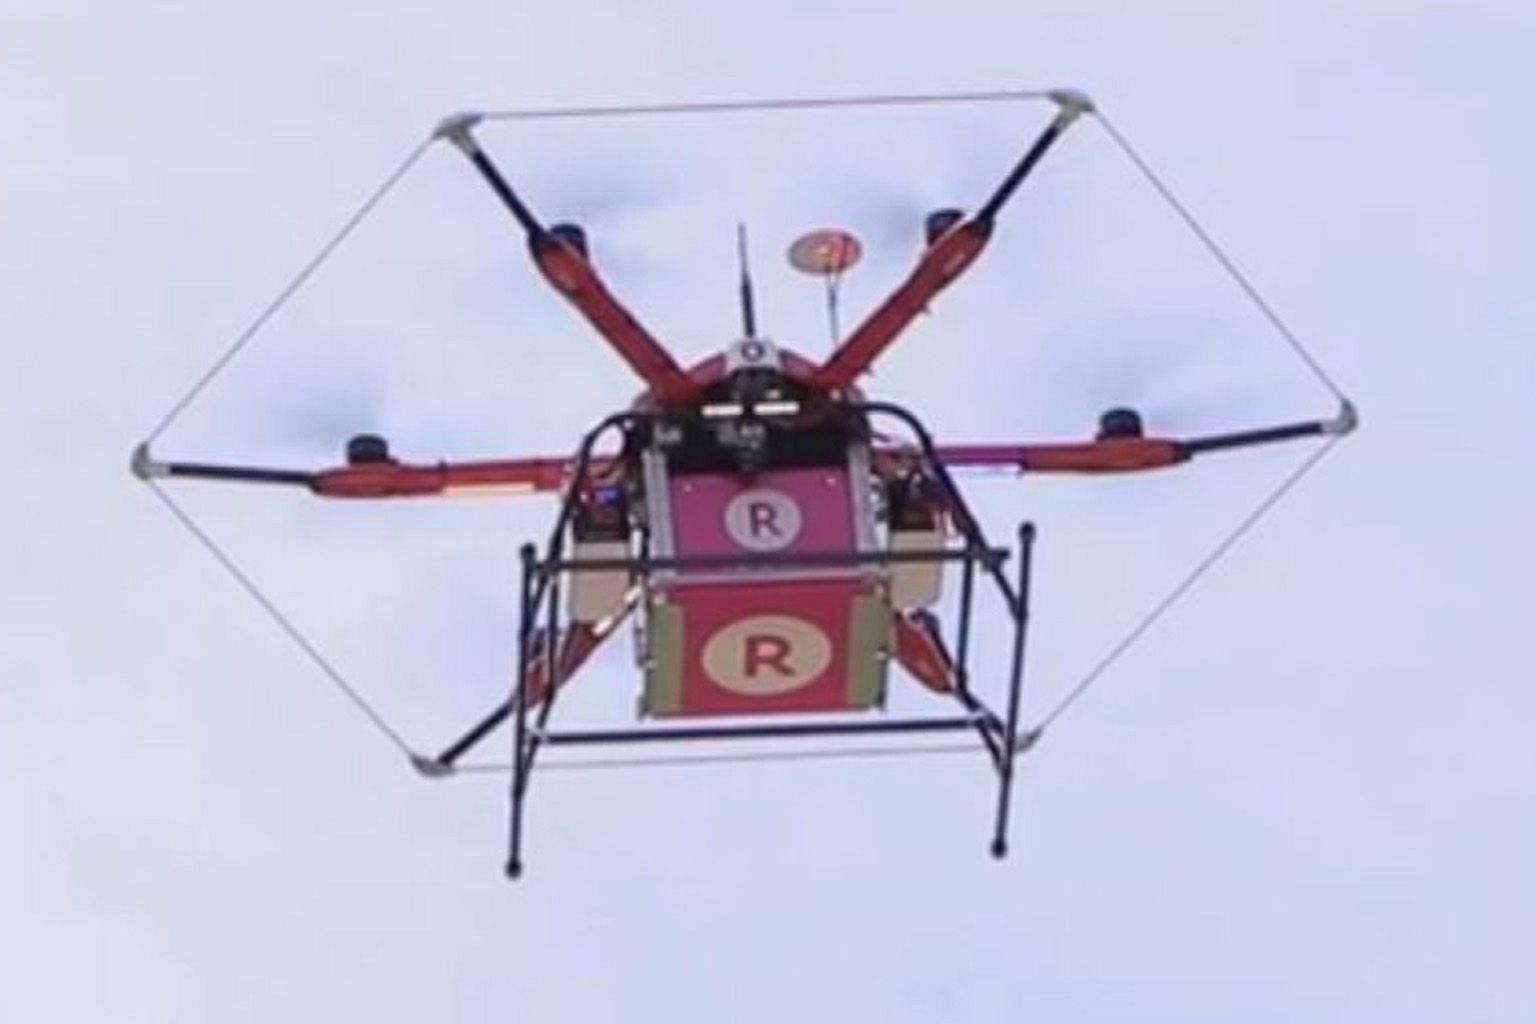 Rakuten launched its first drone delivery service last year. It is able to deliver products to players at golf courses.